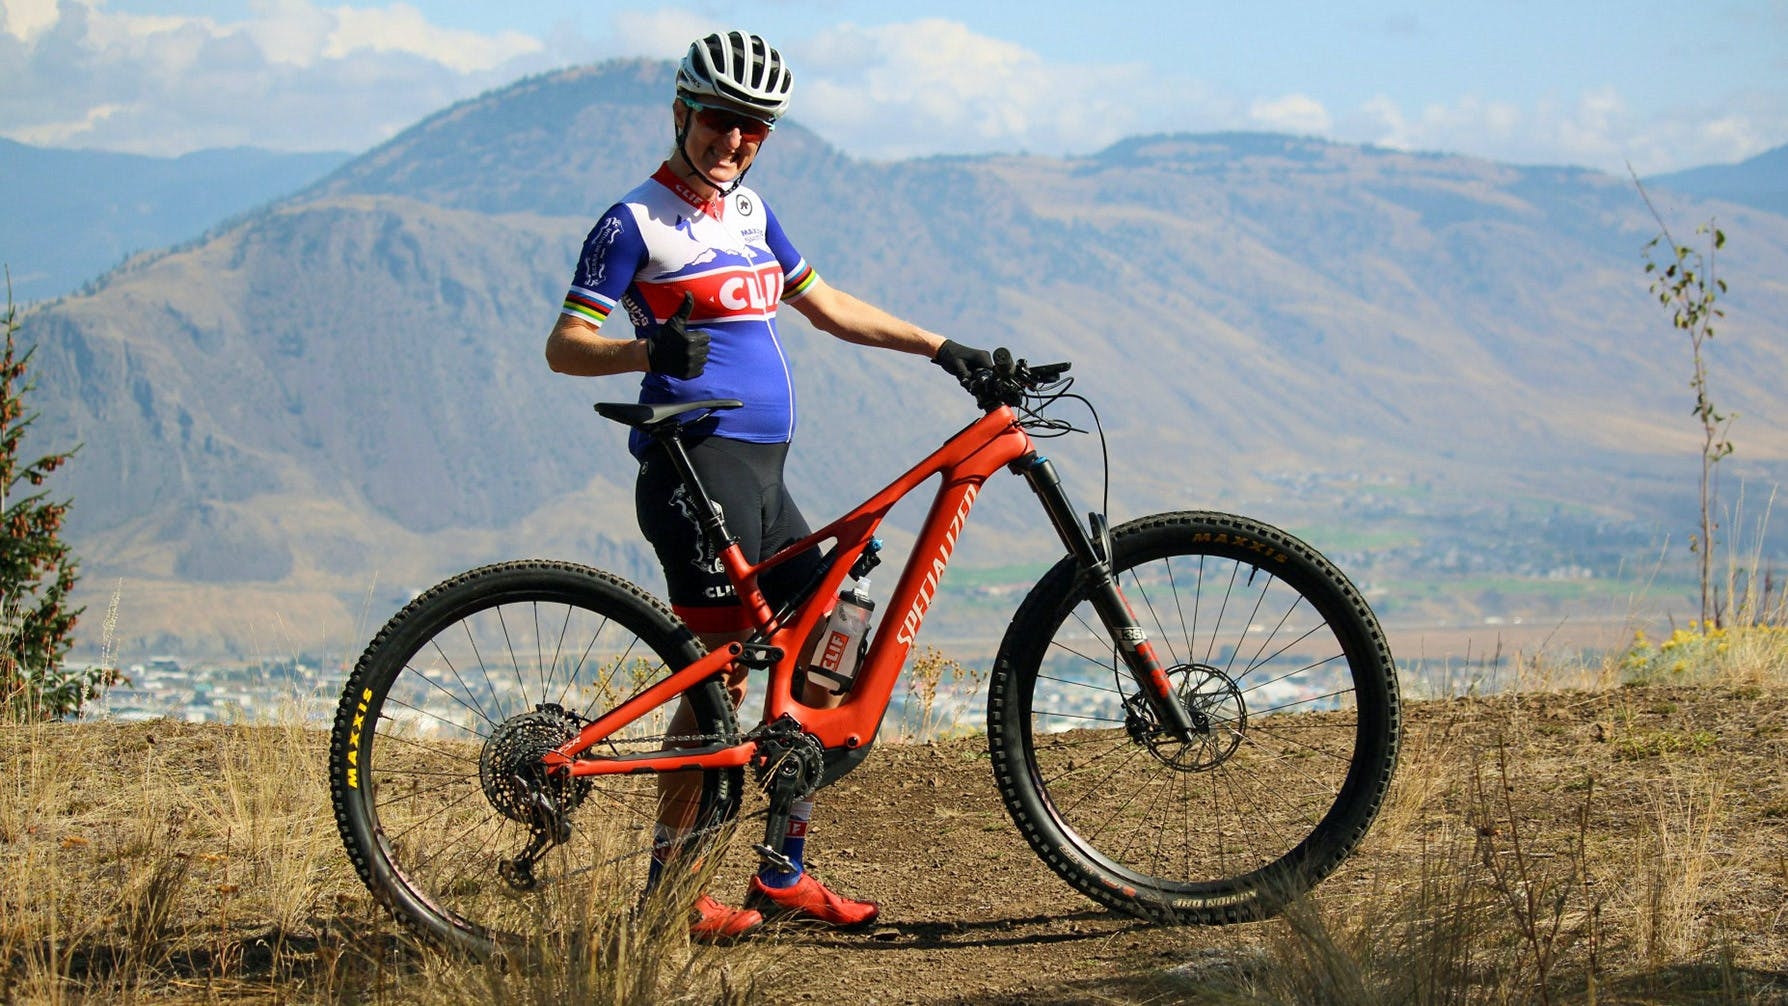 Athlete mom Catharine Pendrel mountain biking